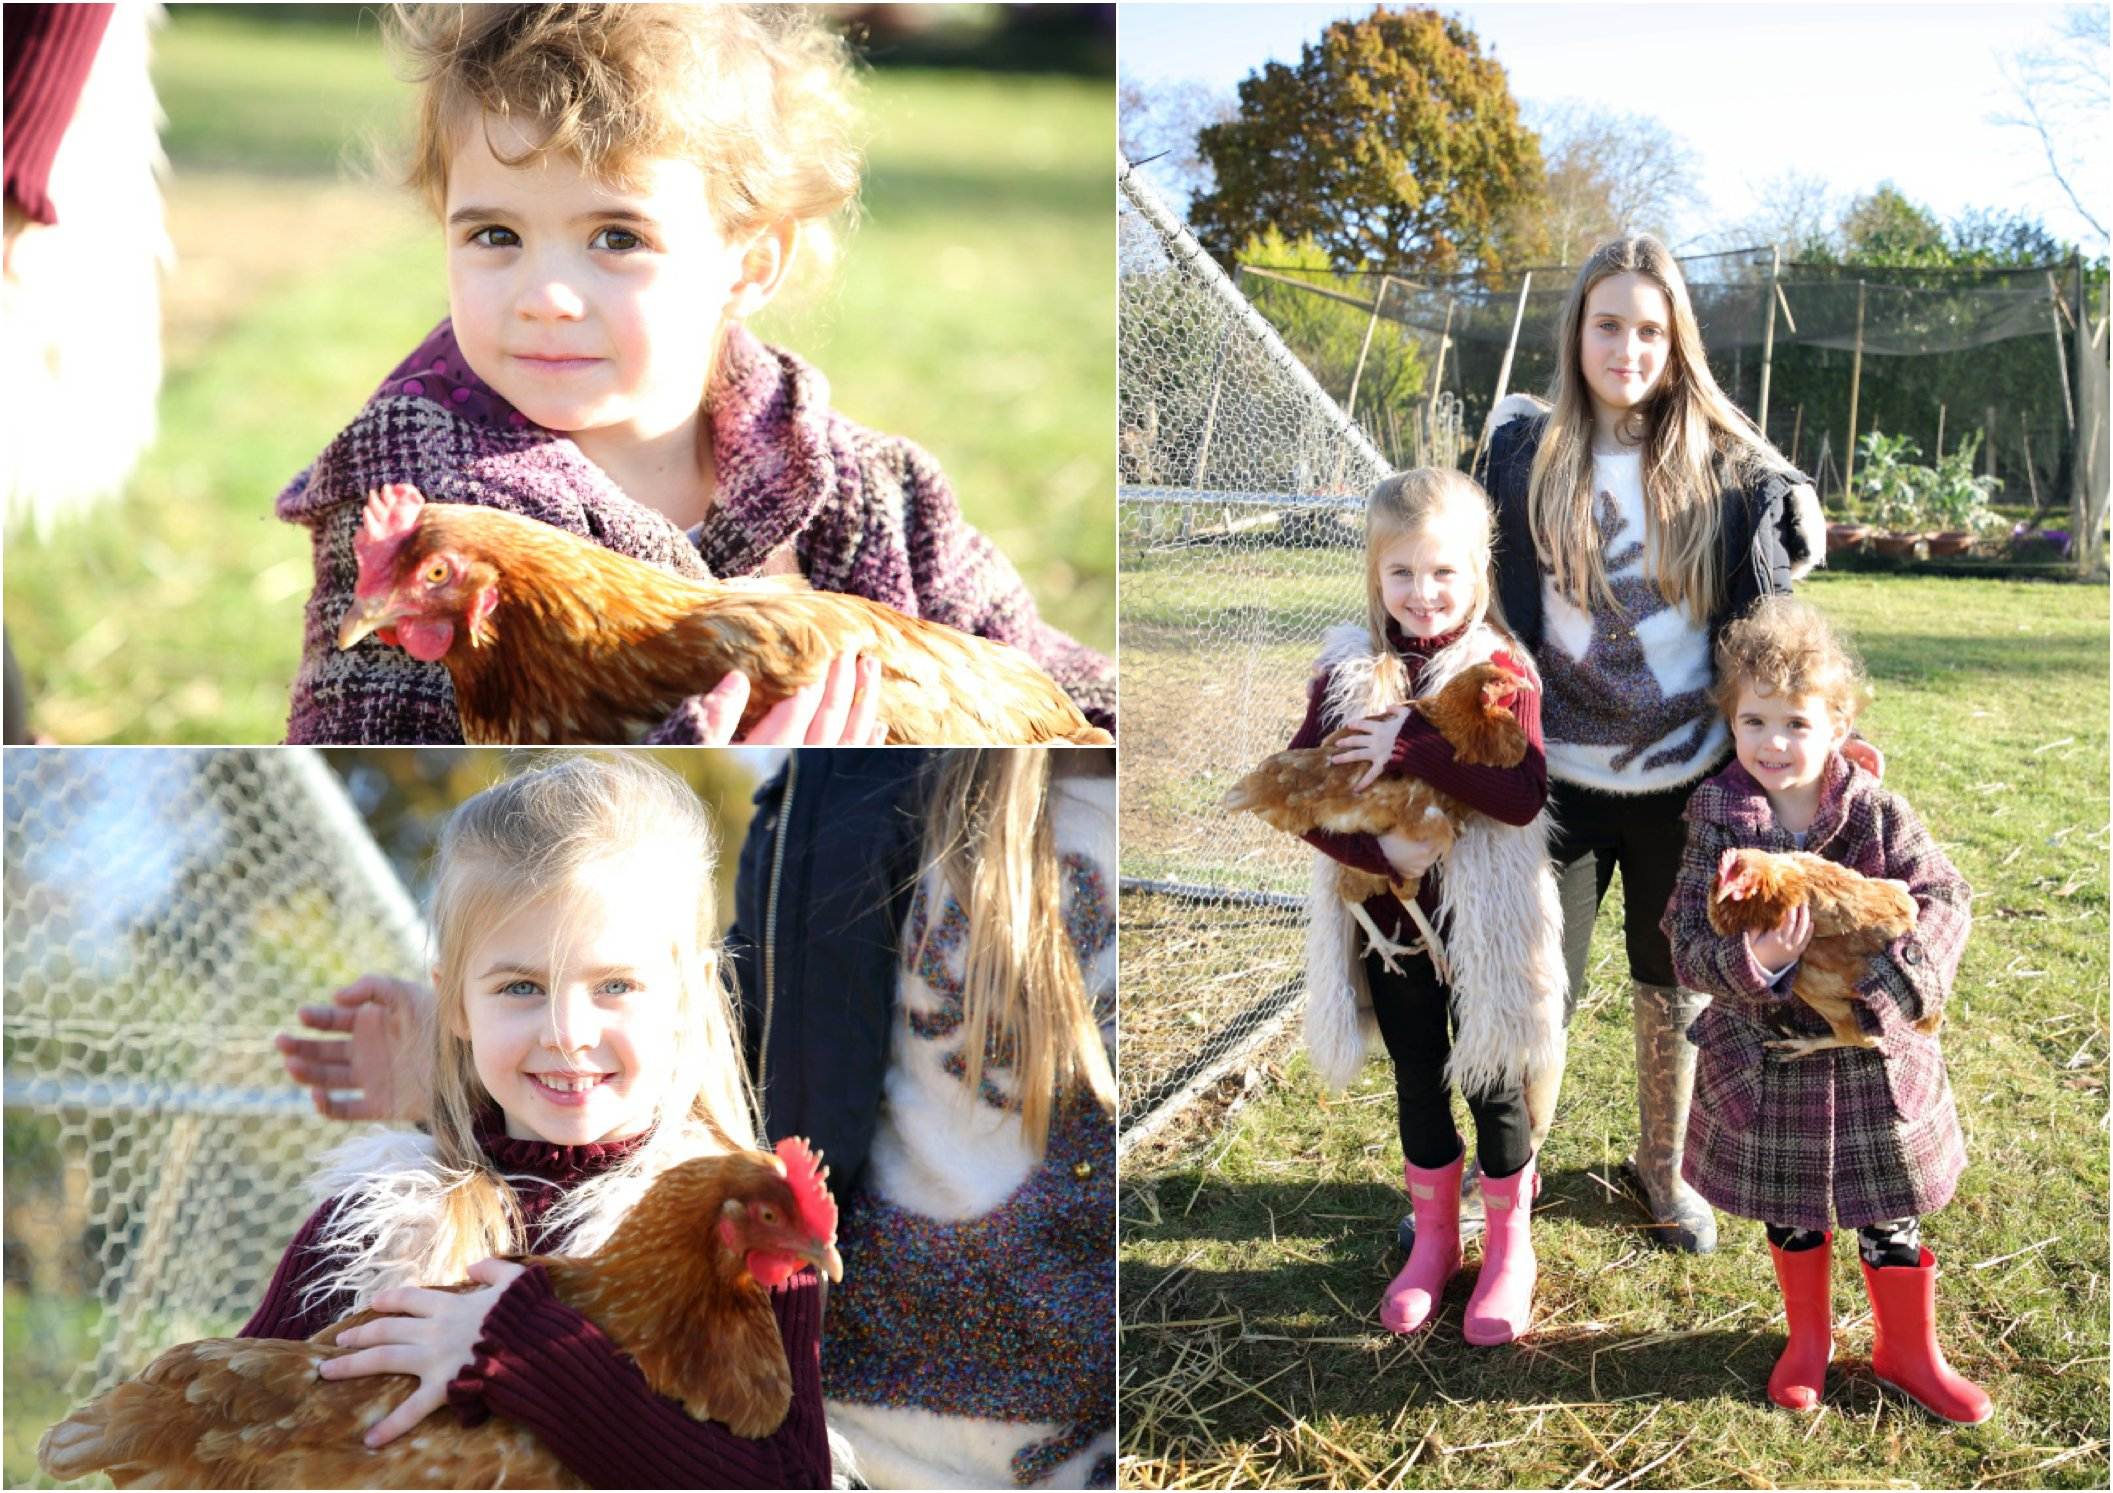 holding chickens at fun family photo session on family farm, in suffolk countryside